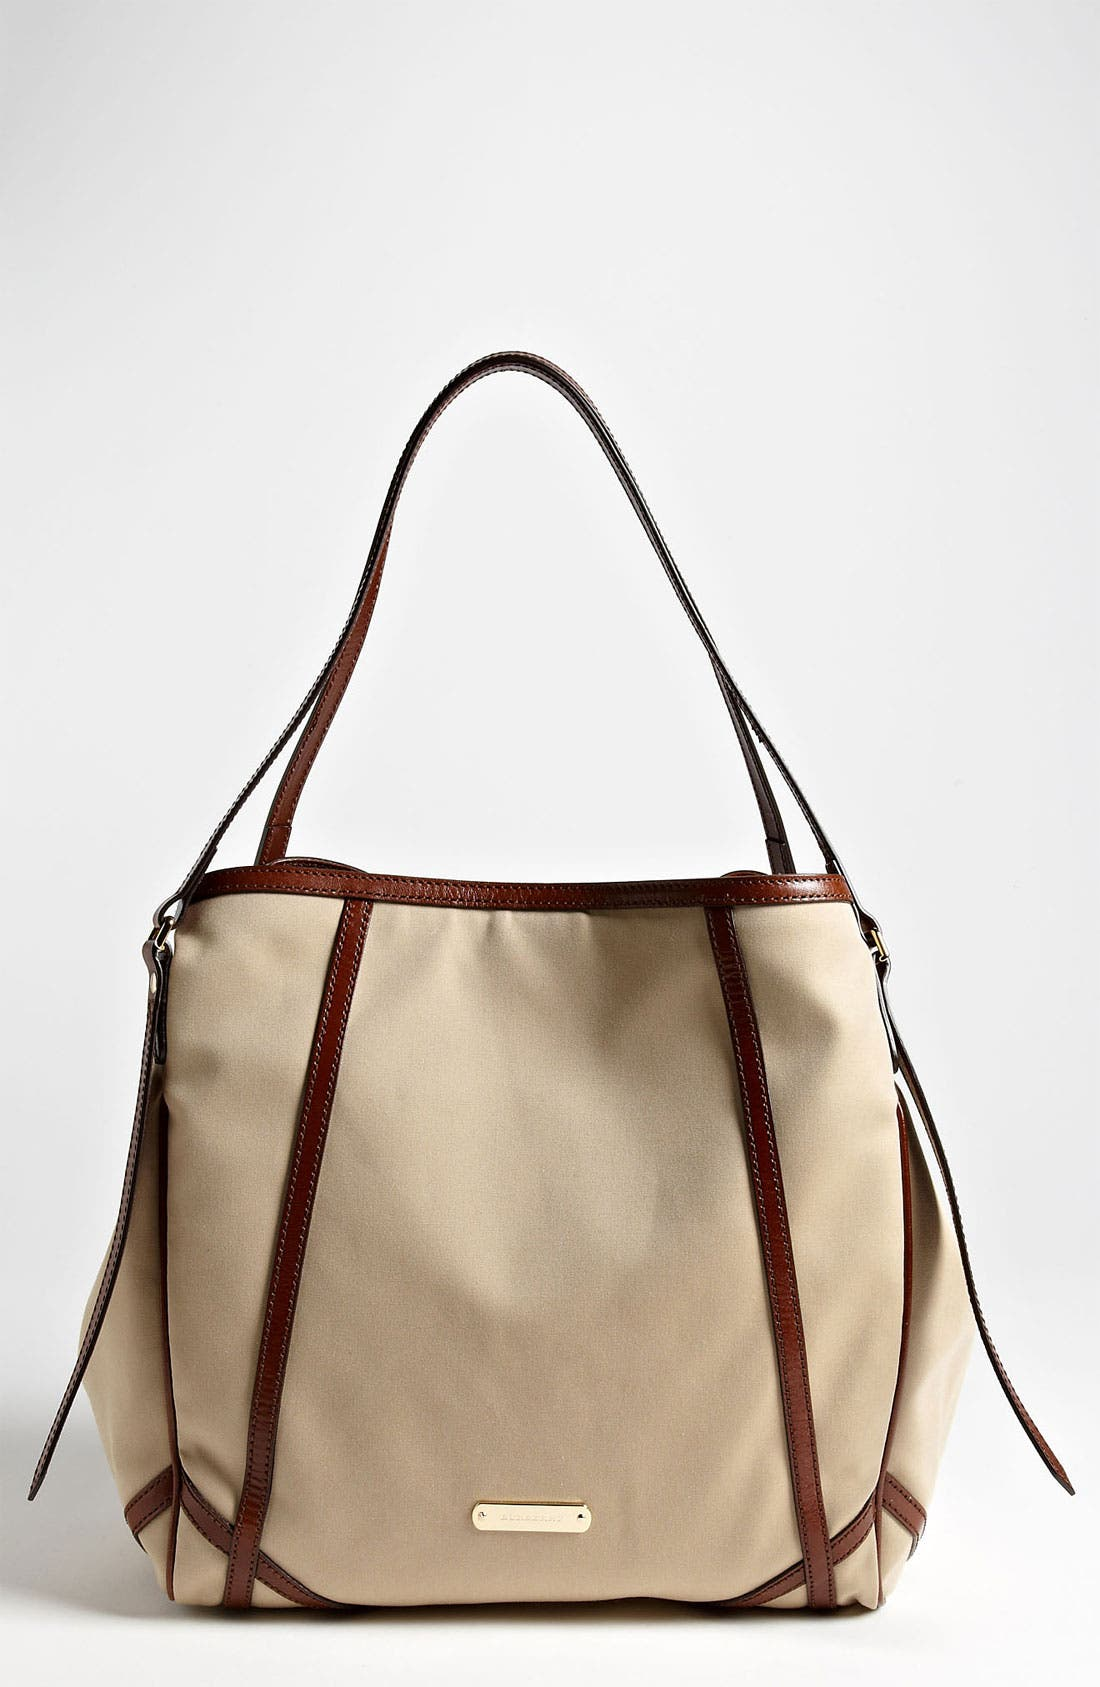 Main Image - Burberry 'Trench - Medium' Fabric Tote